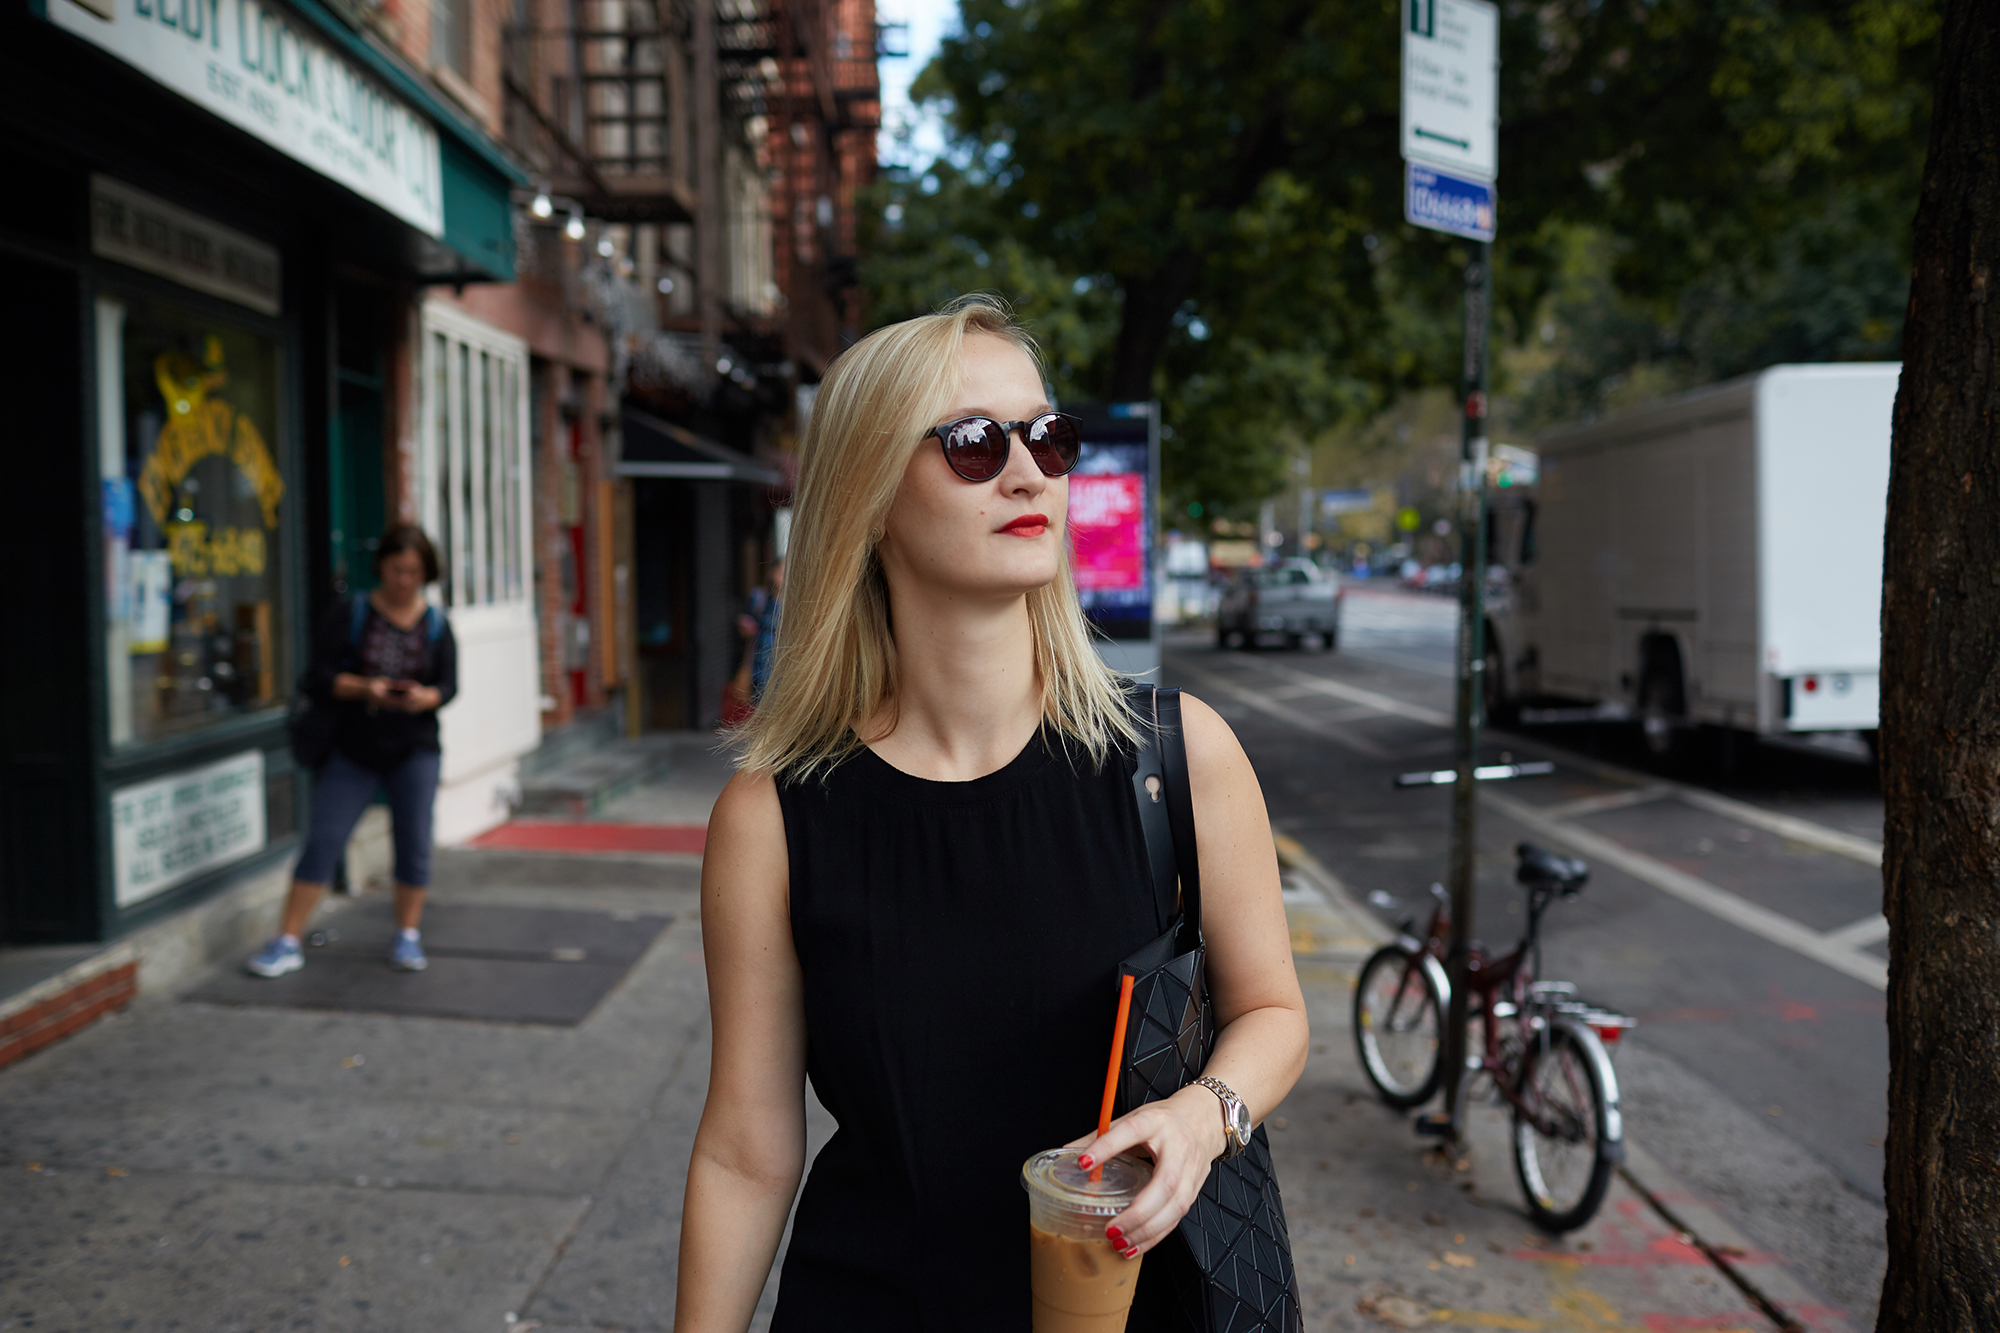 Facebook - 2017.10 - New York Day In The Life - 0735 copy.jpg